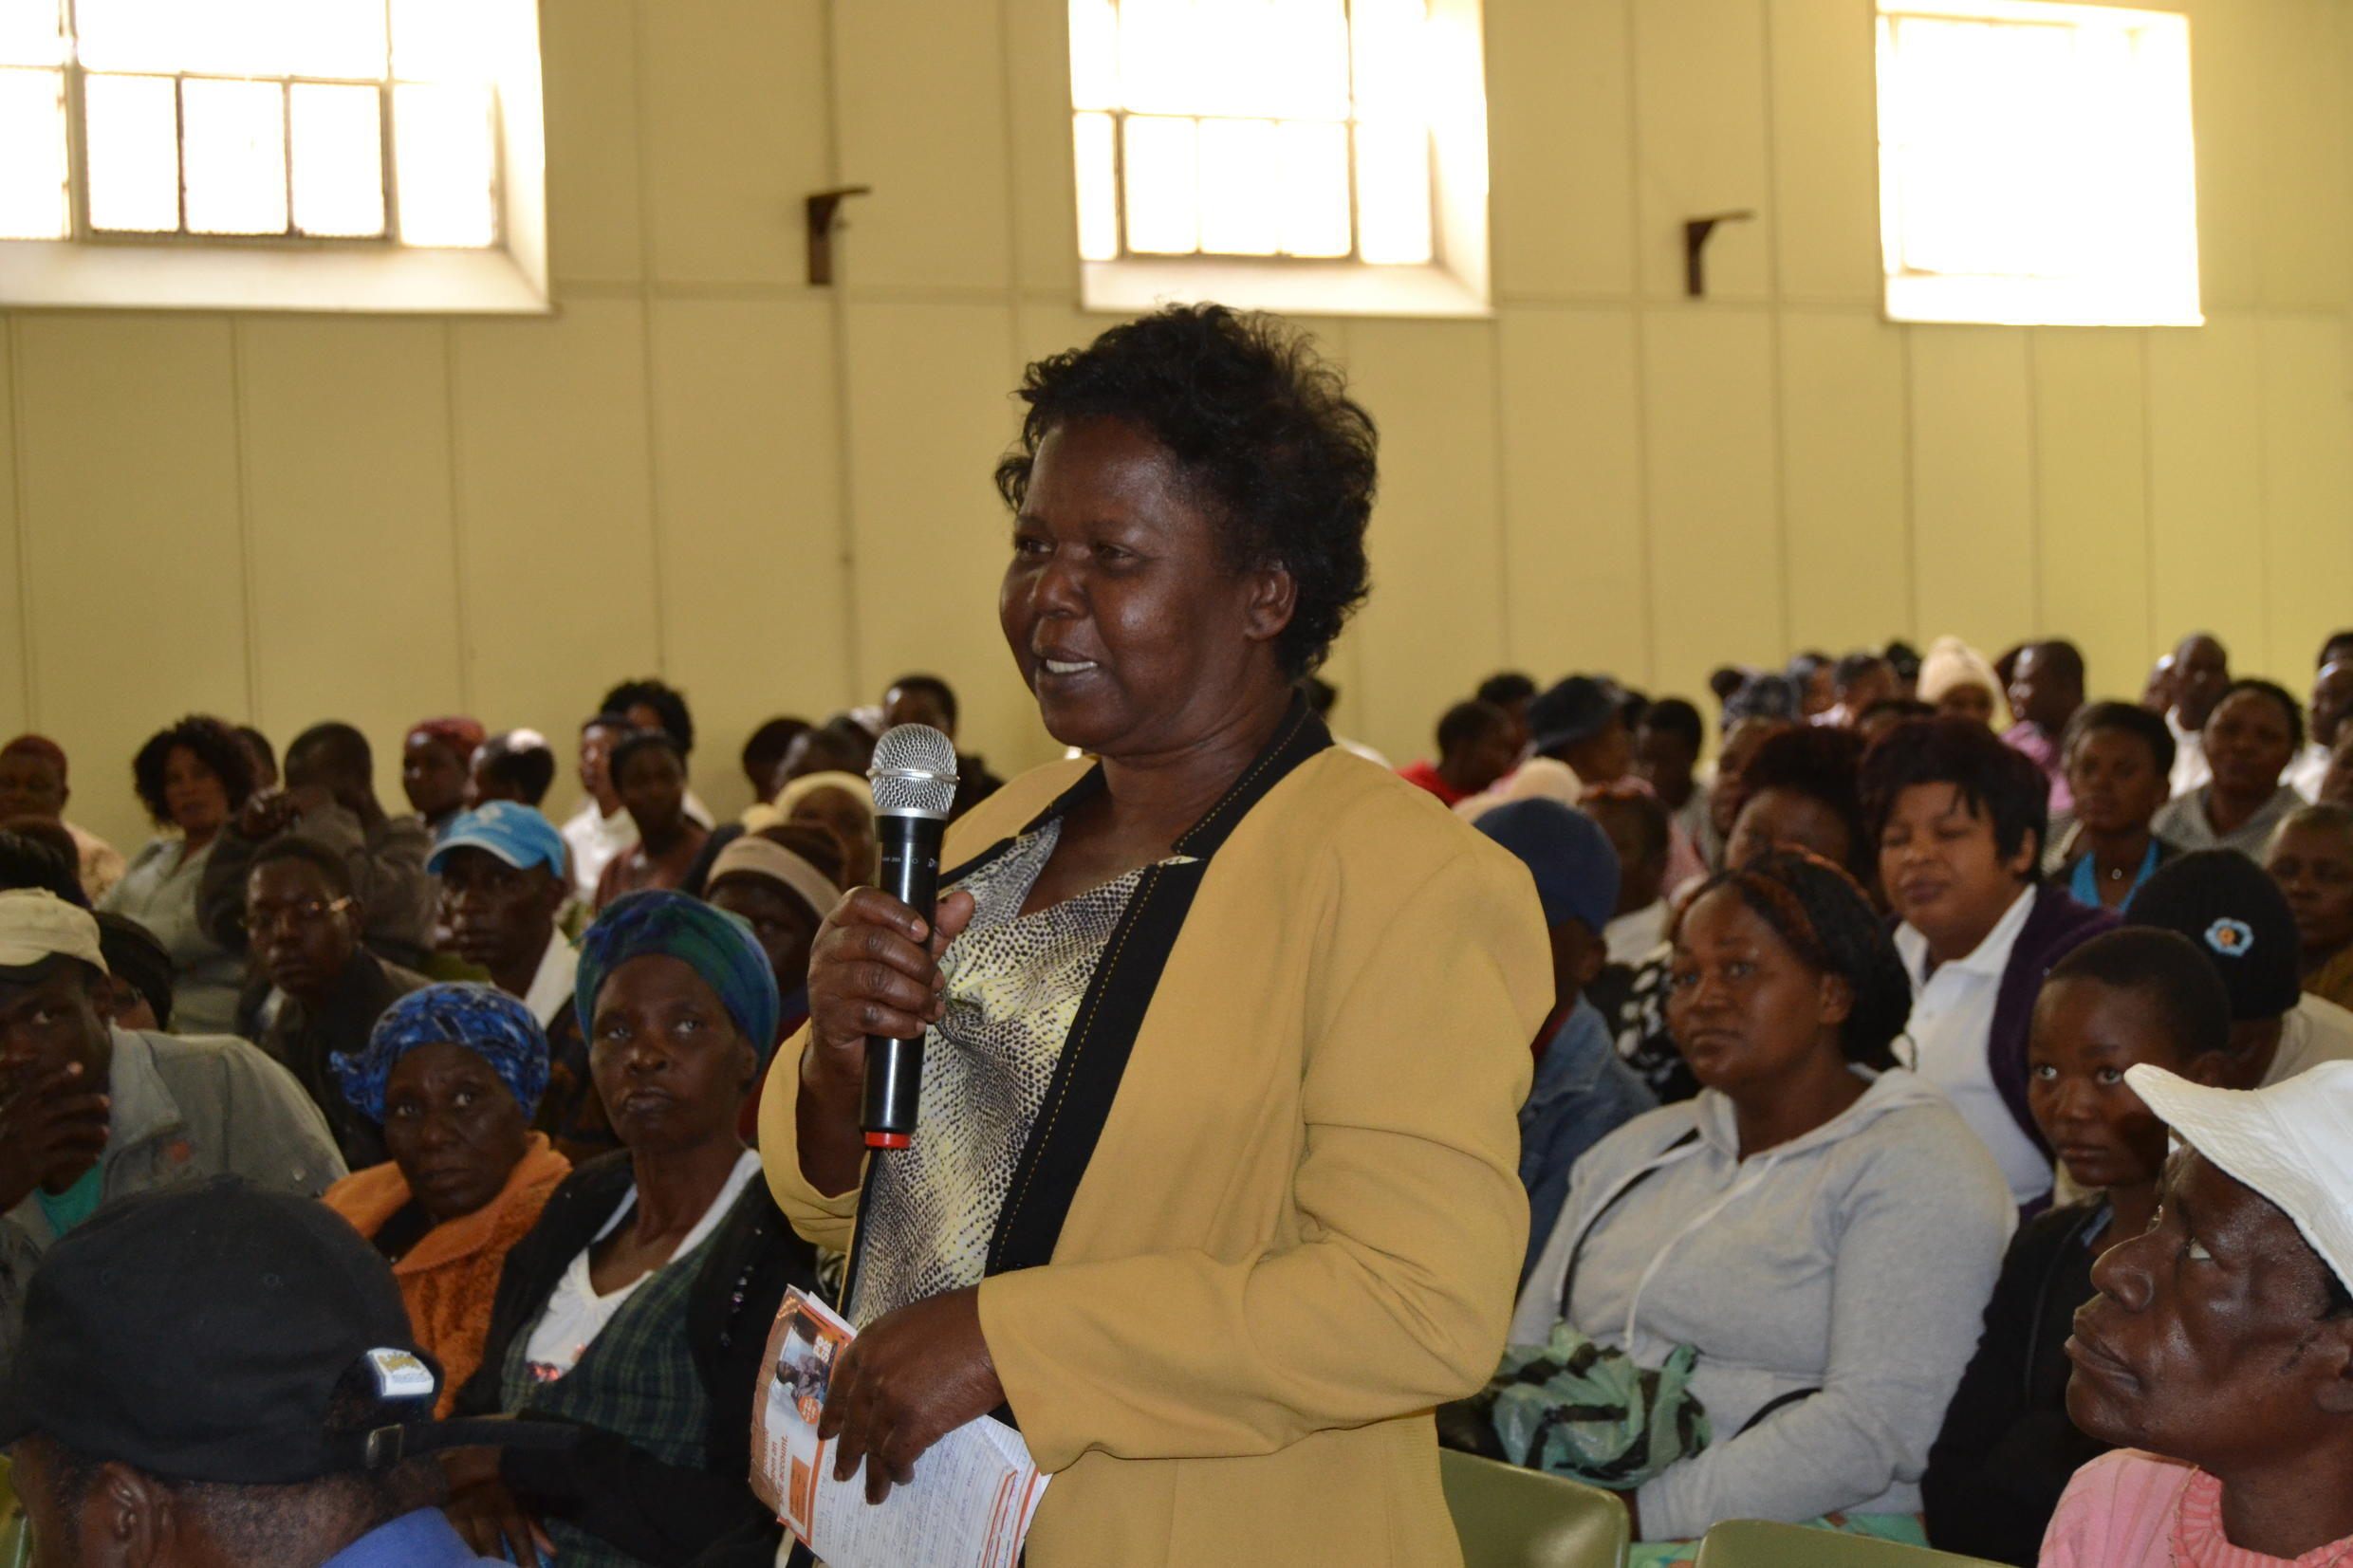 An informal trader at the ZCIEA Bulawayo town hall asks political candidates about the issues of spot fines and harassment of vendors.